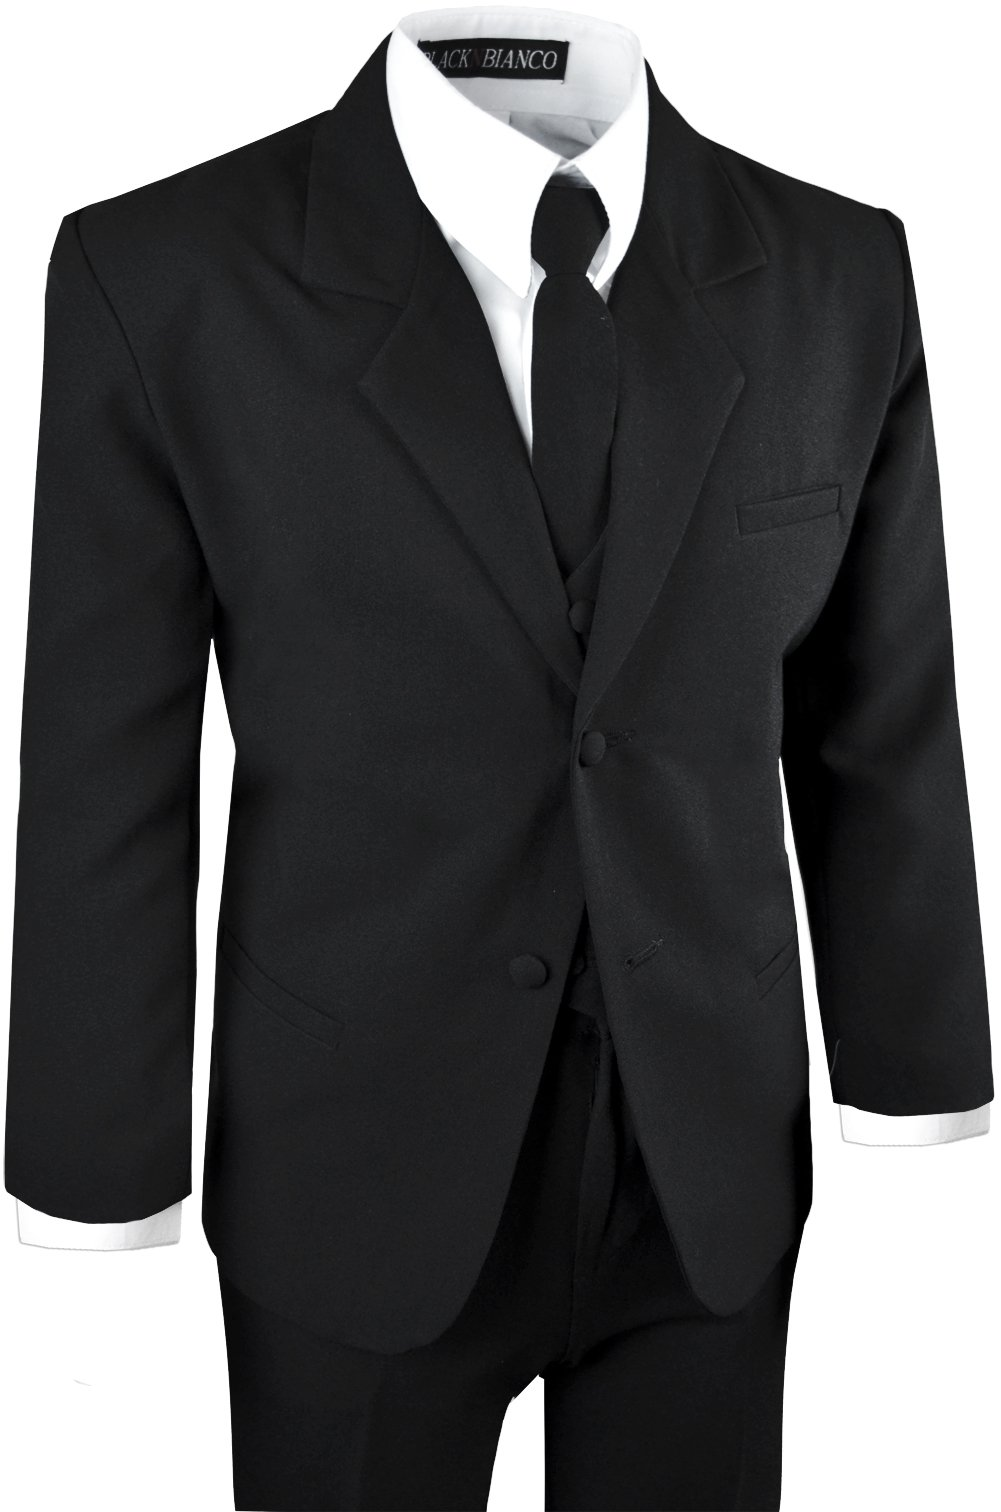 Boys Black Tuxedo Suit with Tie Young Boys Youth Size 16 by Black n Bianco (Image #5)